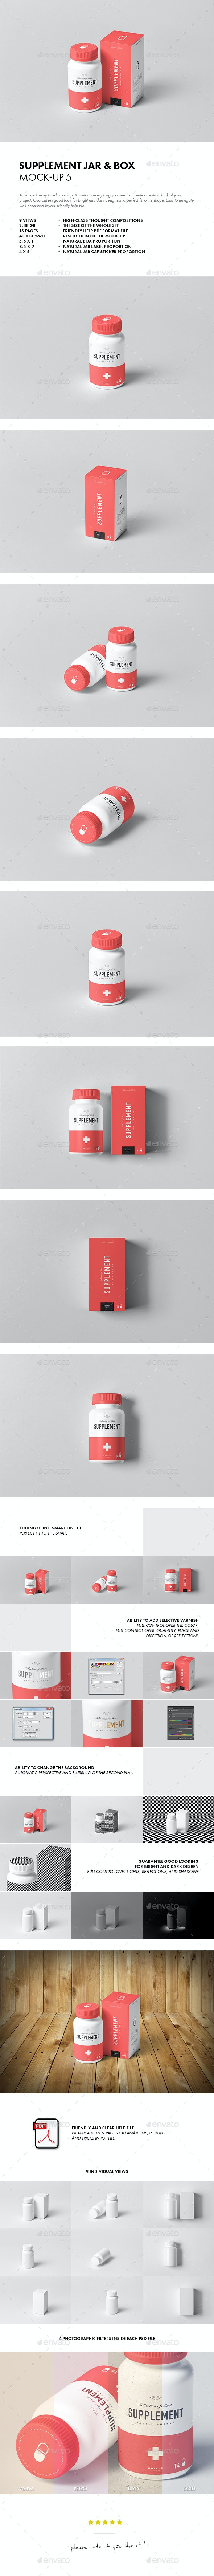 Supplement Jar & Box Mock-Up 5 - Miscellaneous Packaging